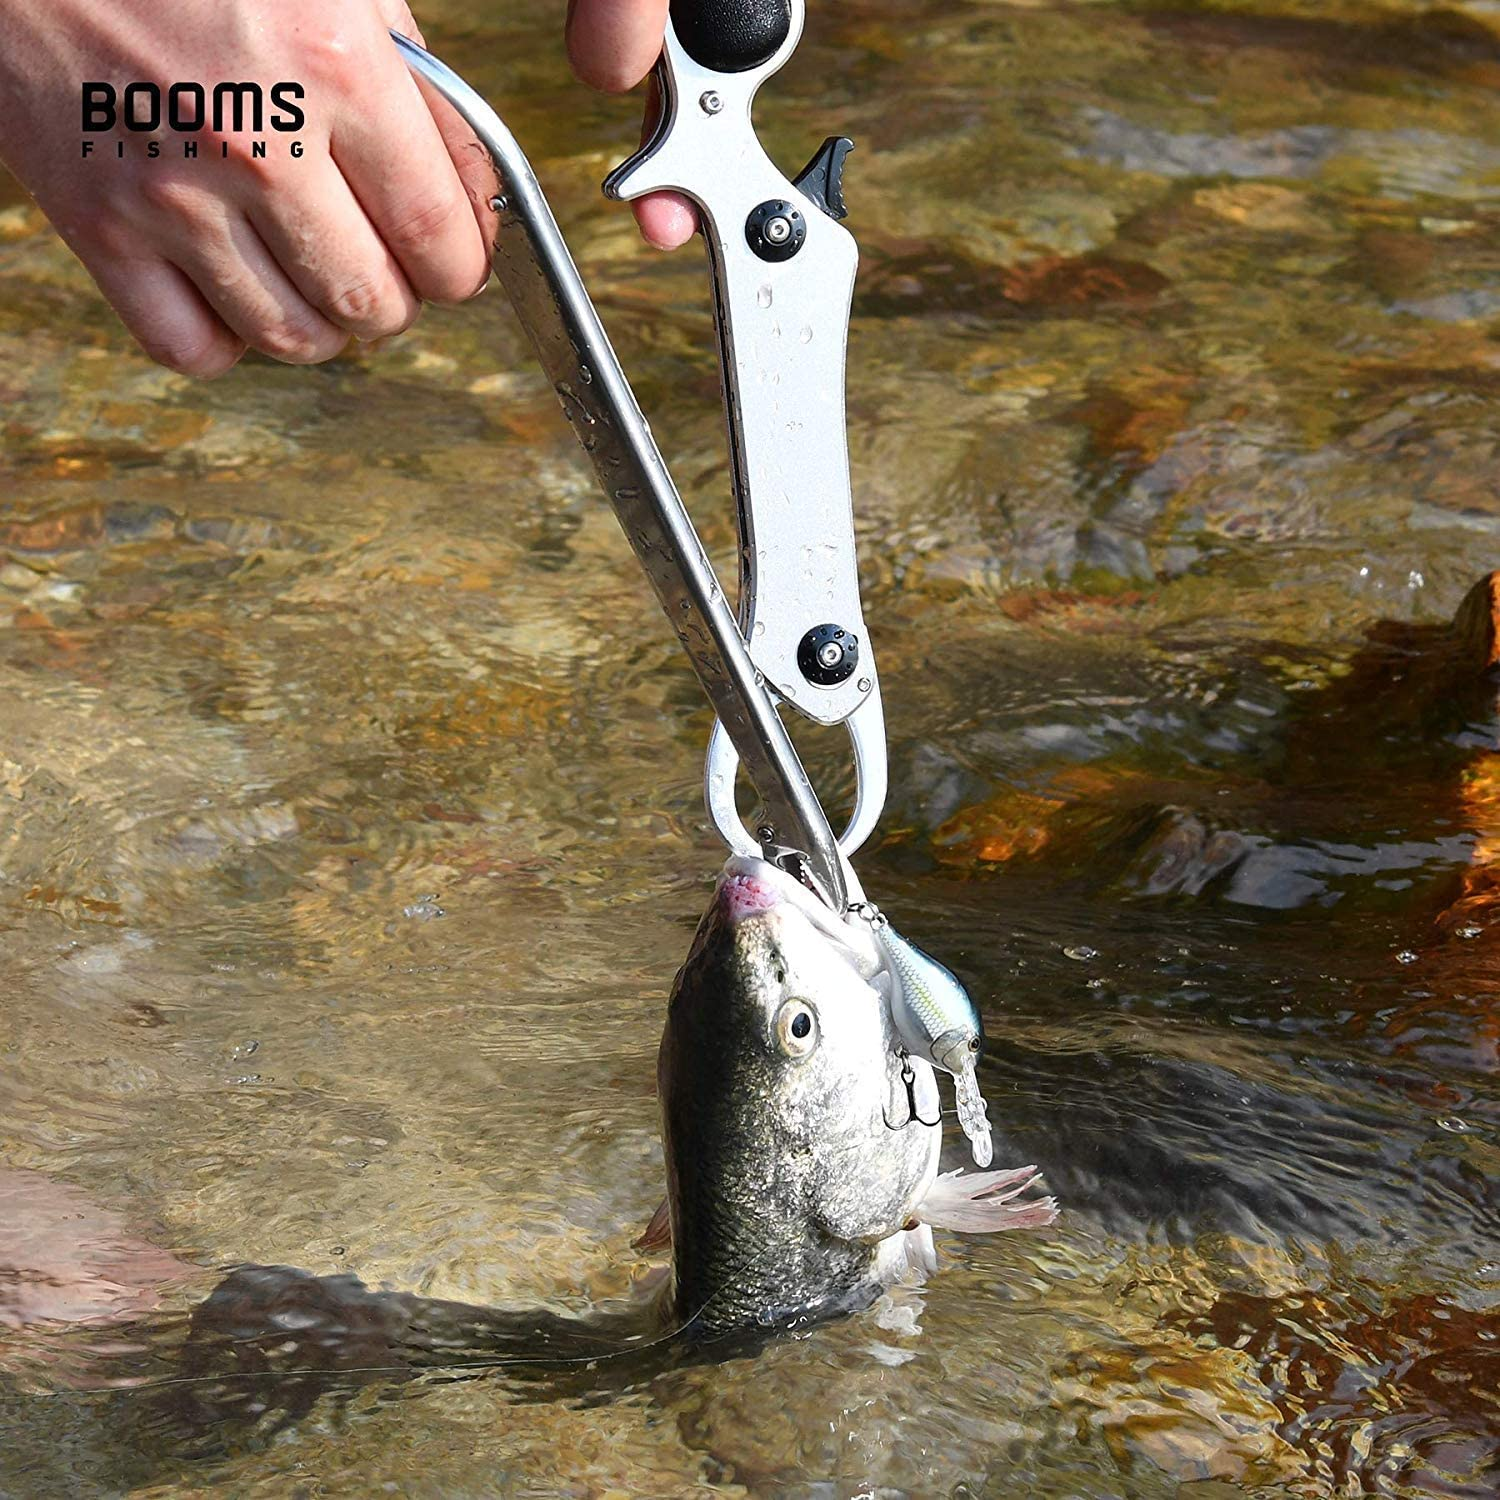 Booms Fishing R01 Fish Hook Remover and G04 Fish Gripper